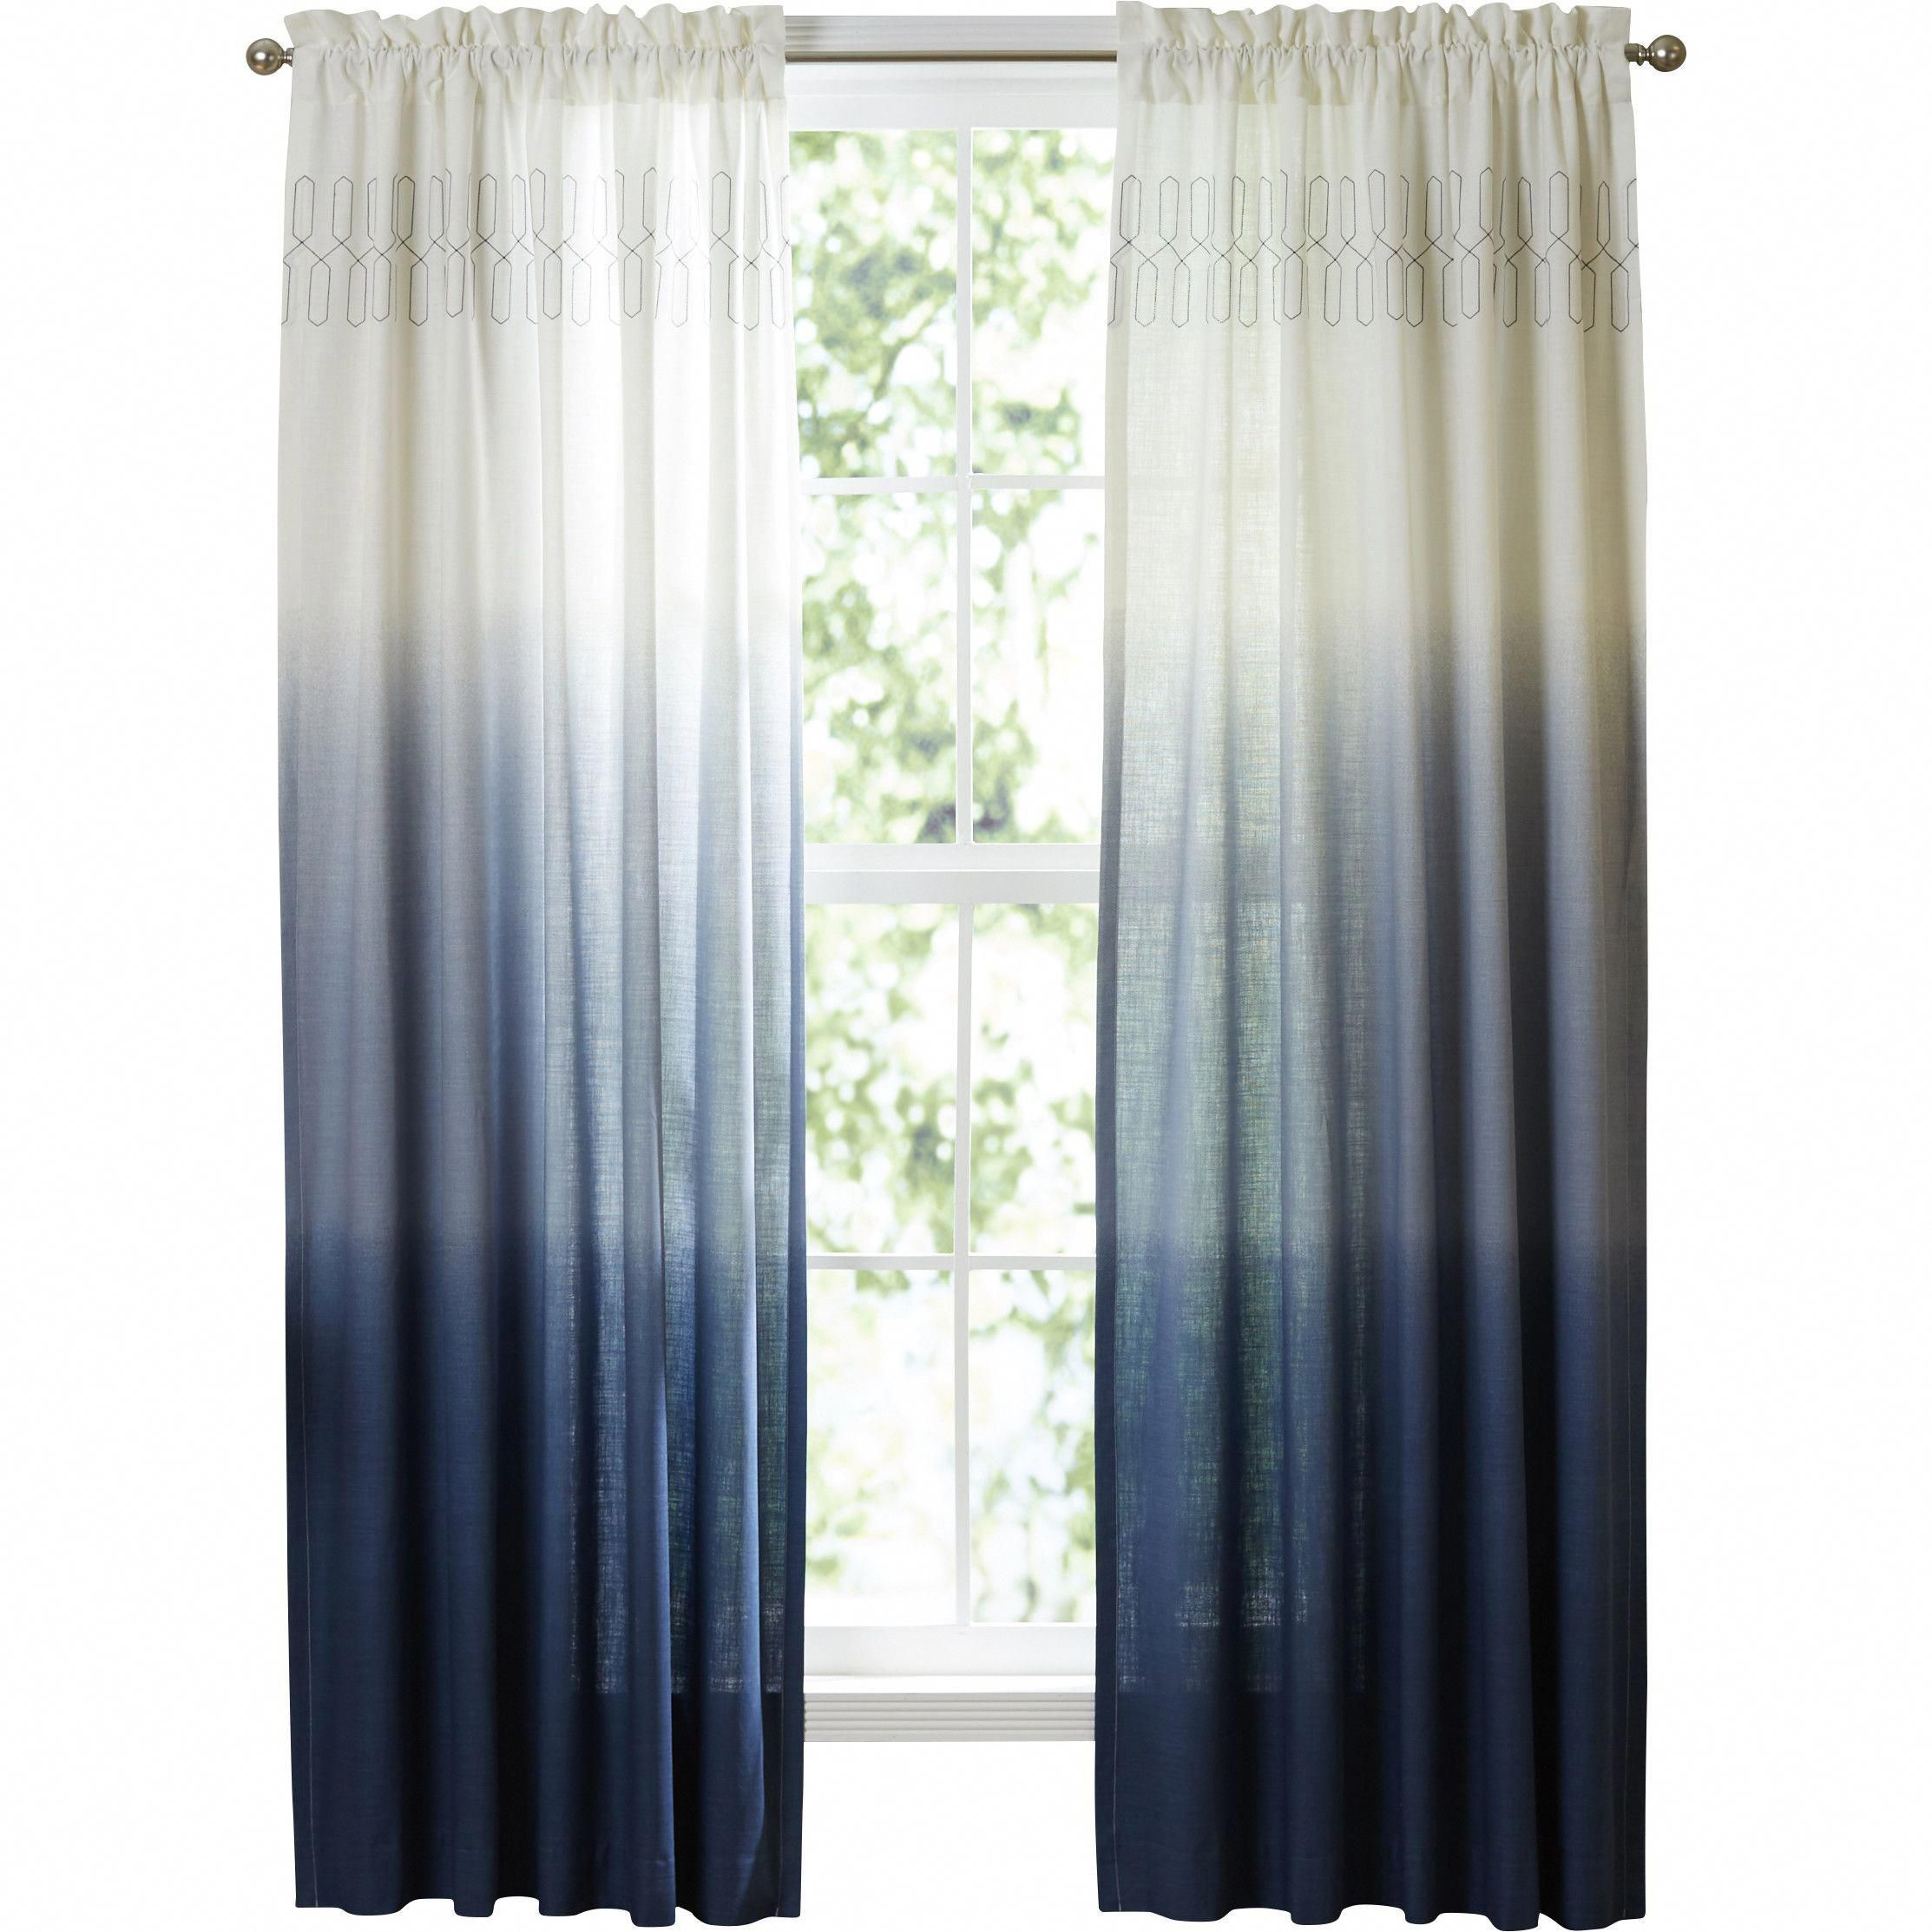 Customer Image Zoomed Besthome Curtains Drapes Curtains